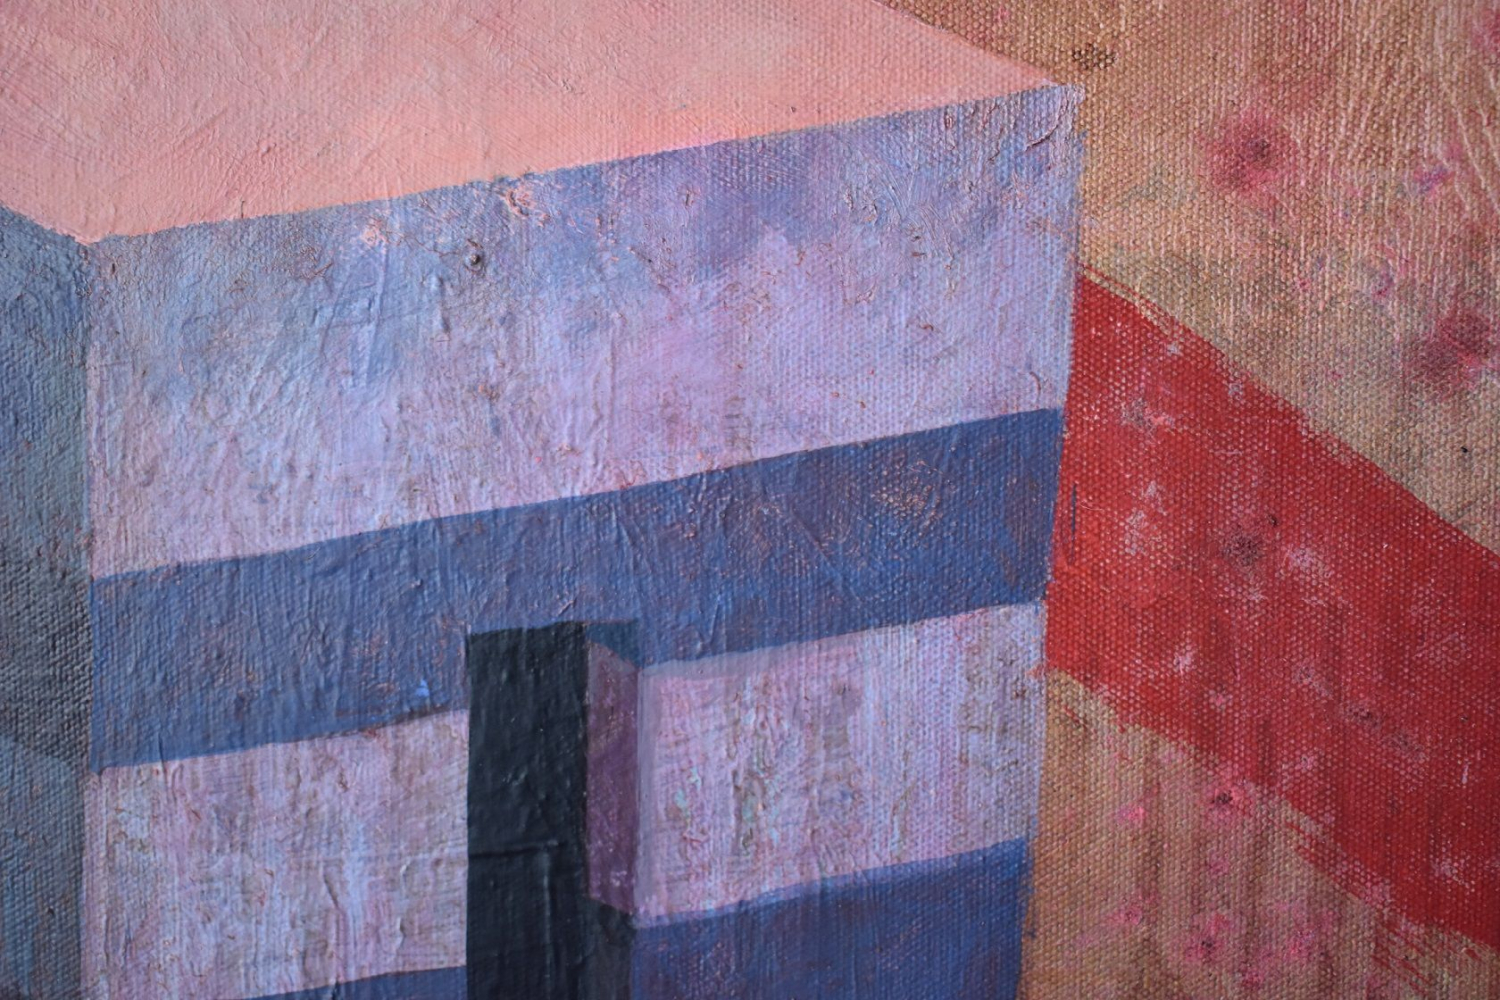 Contemporary painting - Ramon Enrich - RUV - detail 2